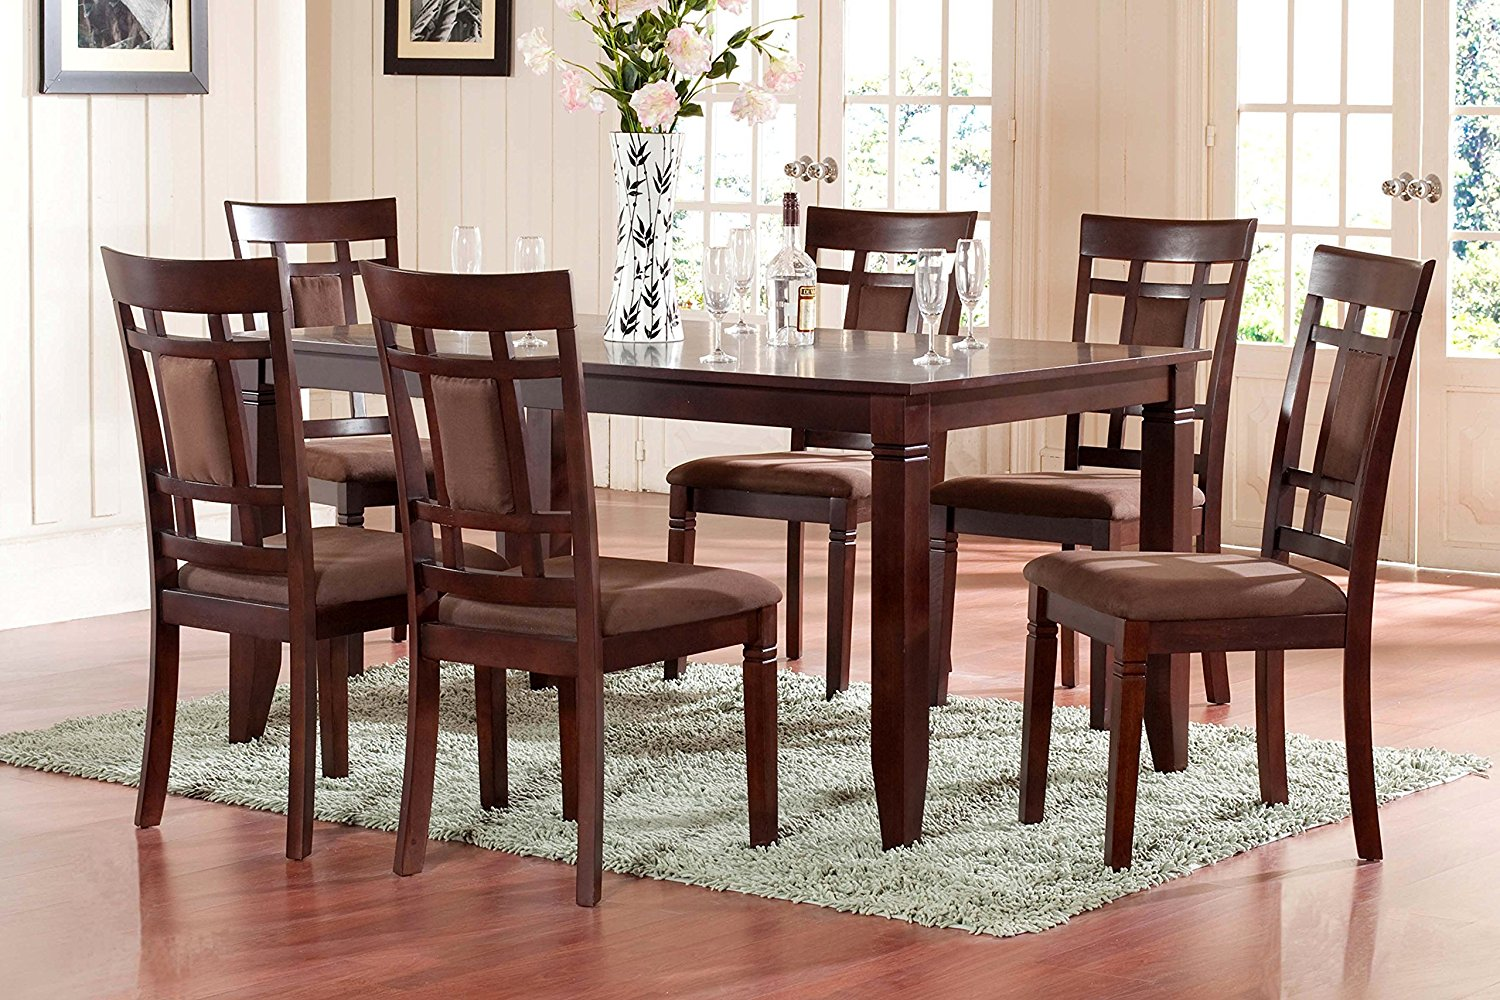 50 Best Dining Room Sets For 2017: The Room Style 7 Piece Cherry Finish Solid Wood Dining